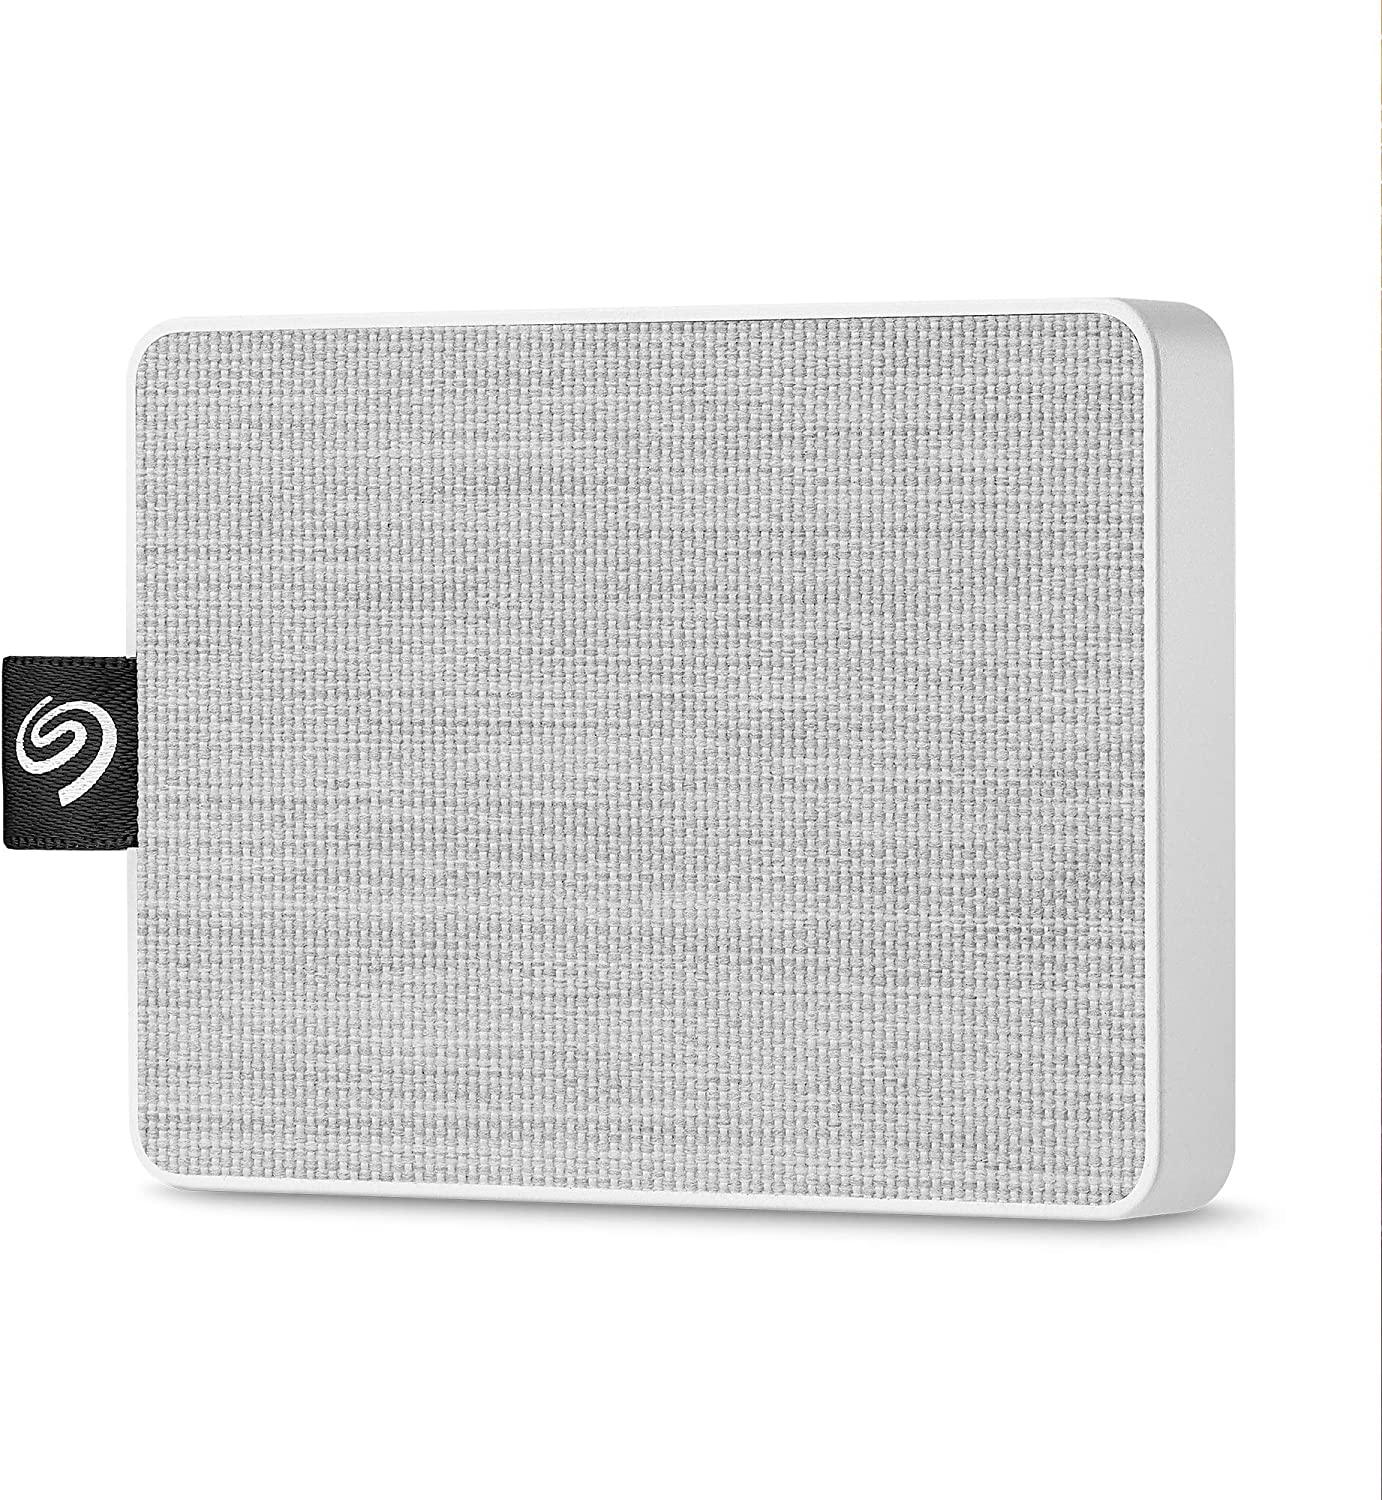 Seagate One Touch SSD 500GB External Solid State Drive Portable – White, USB 3.0 for PC Laptop and Mac, 1yr Mylio Create, 2 Months Adobe CC Photography (STJE500402)